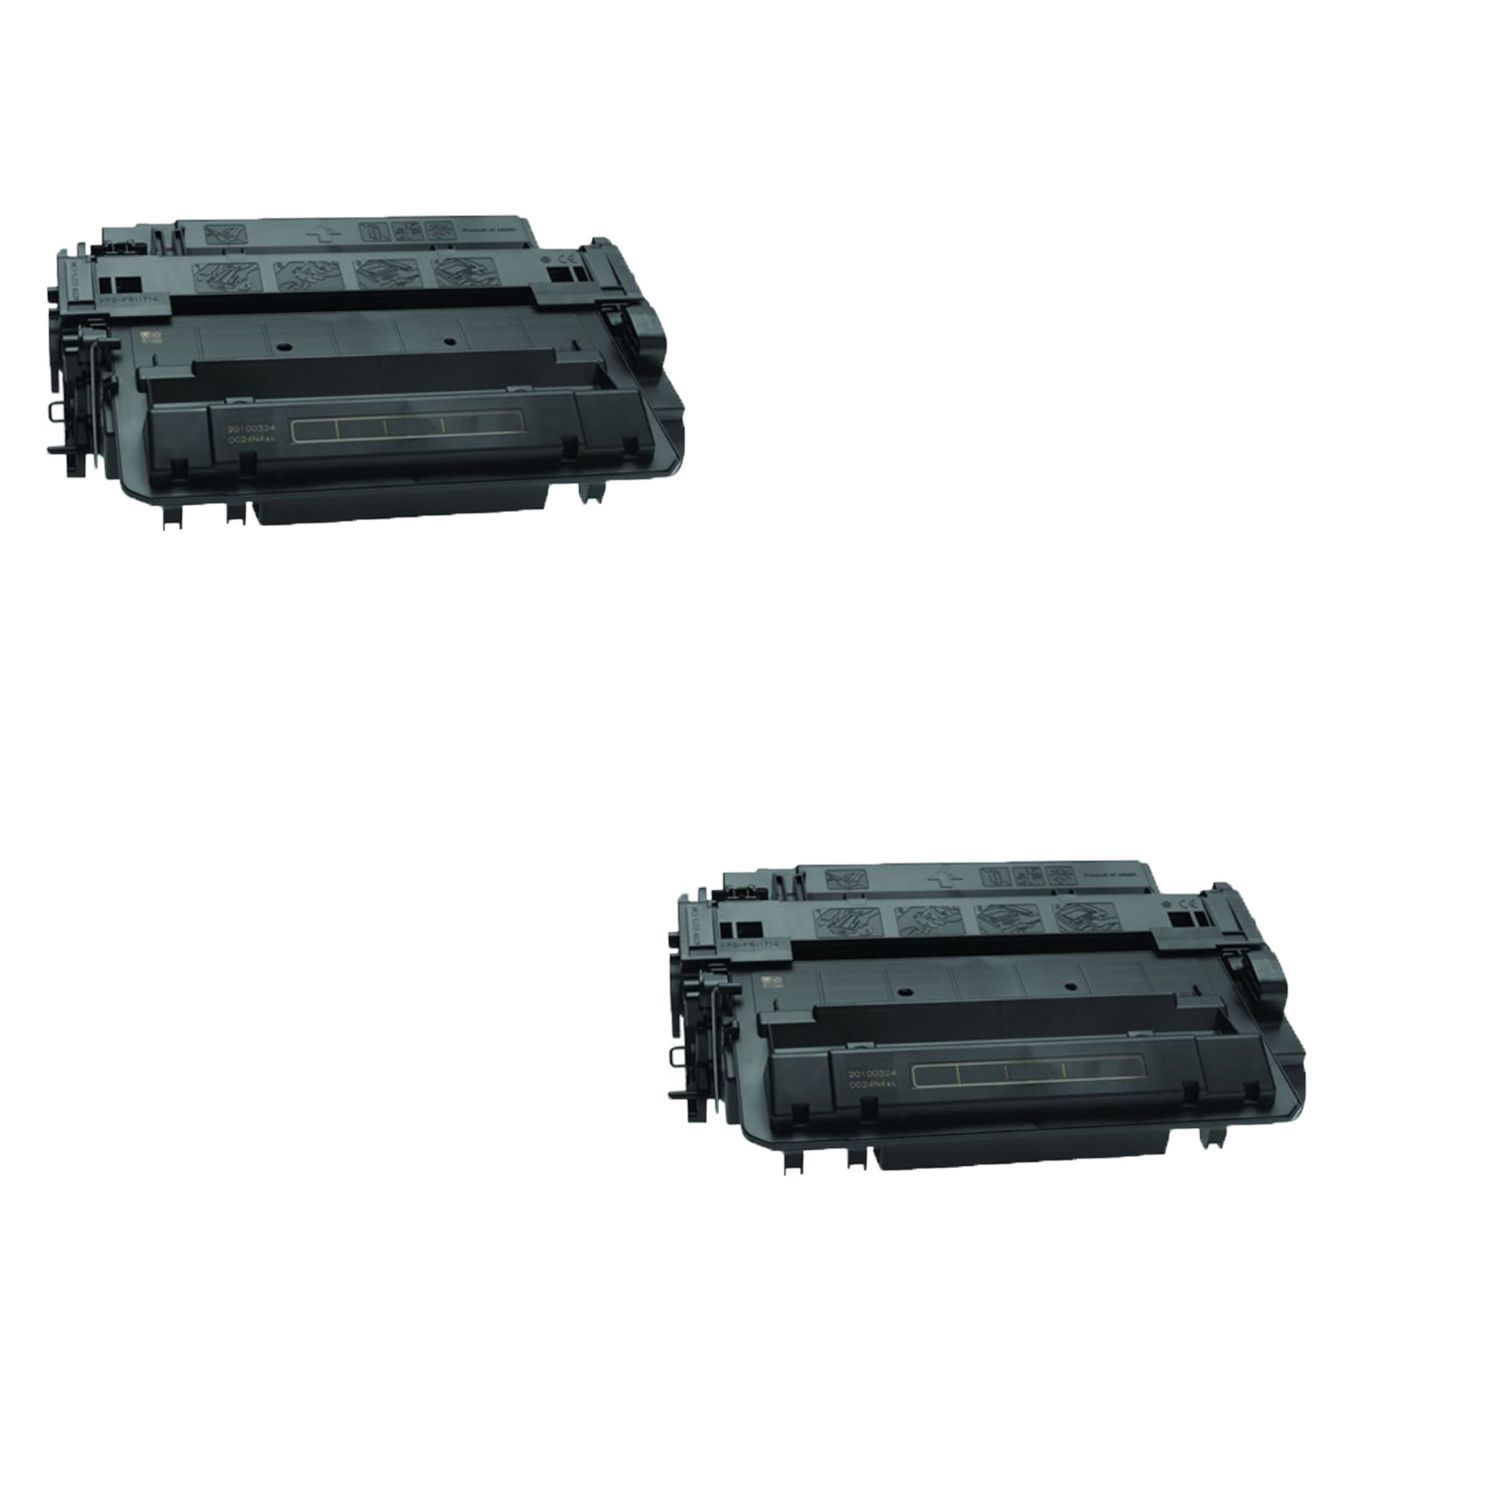 N 2-pack Compatible GPR40 Toner Cartridges for Canon imageRUNNER LBP3560 LBP3580